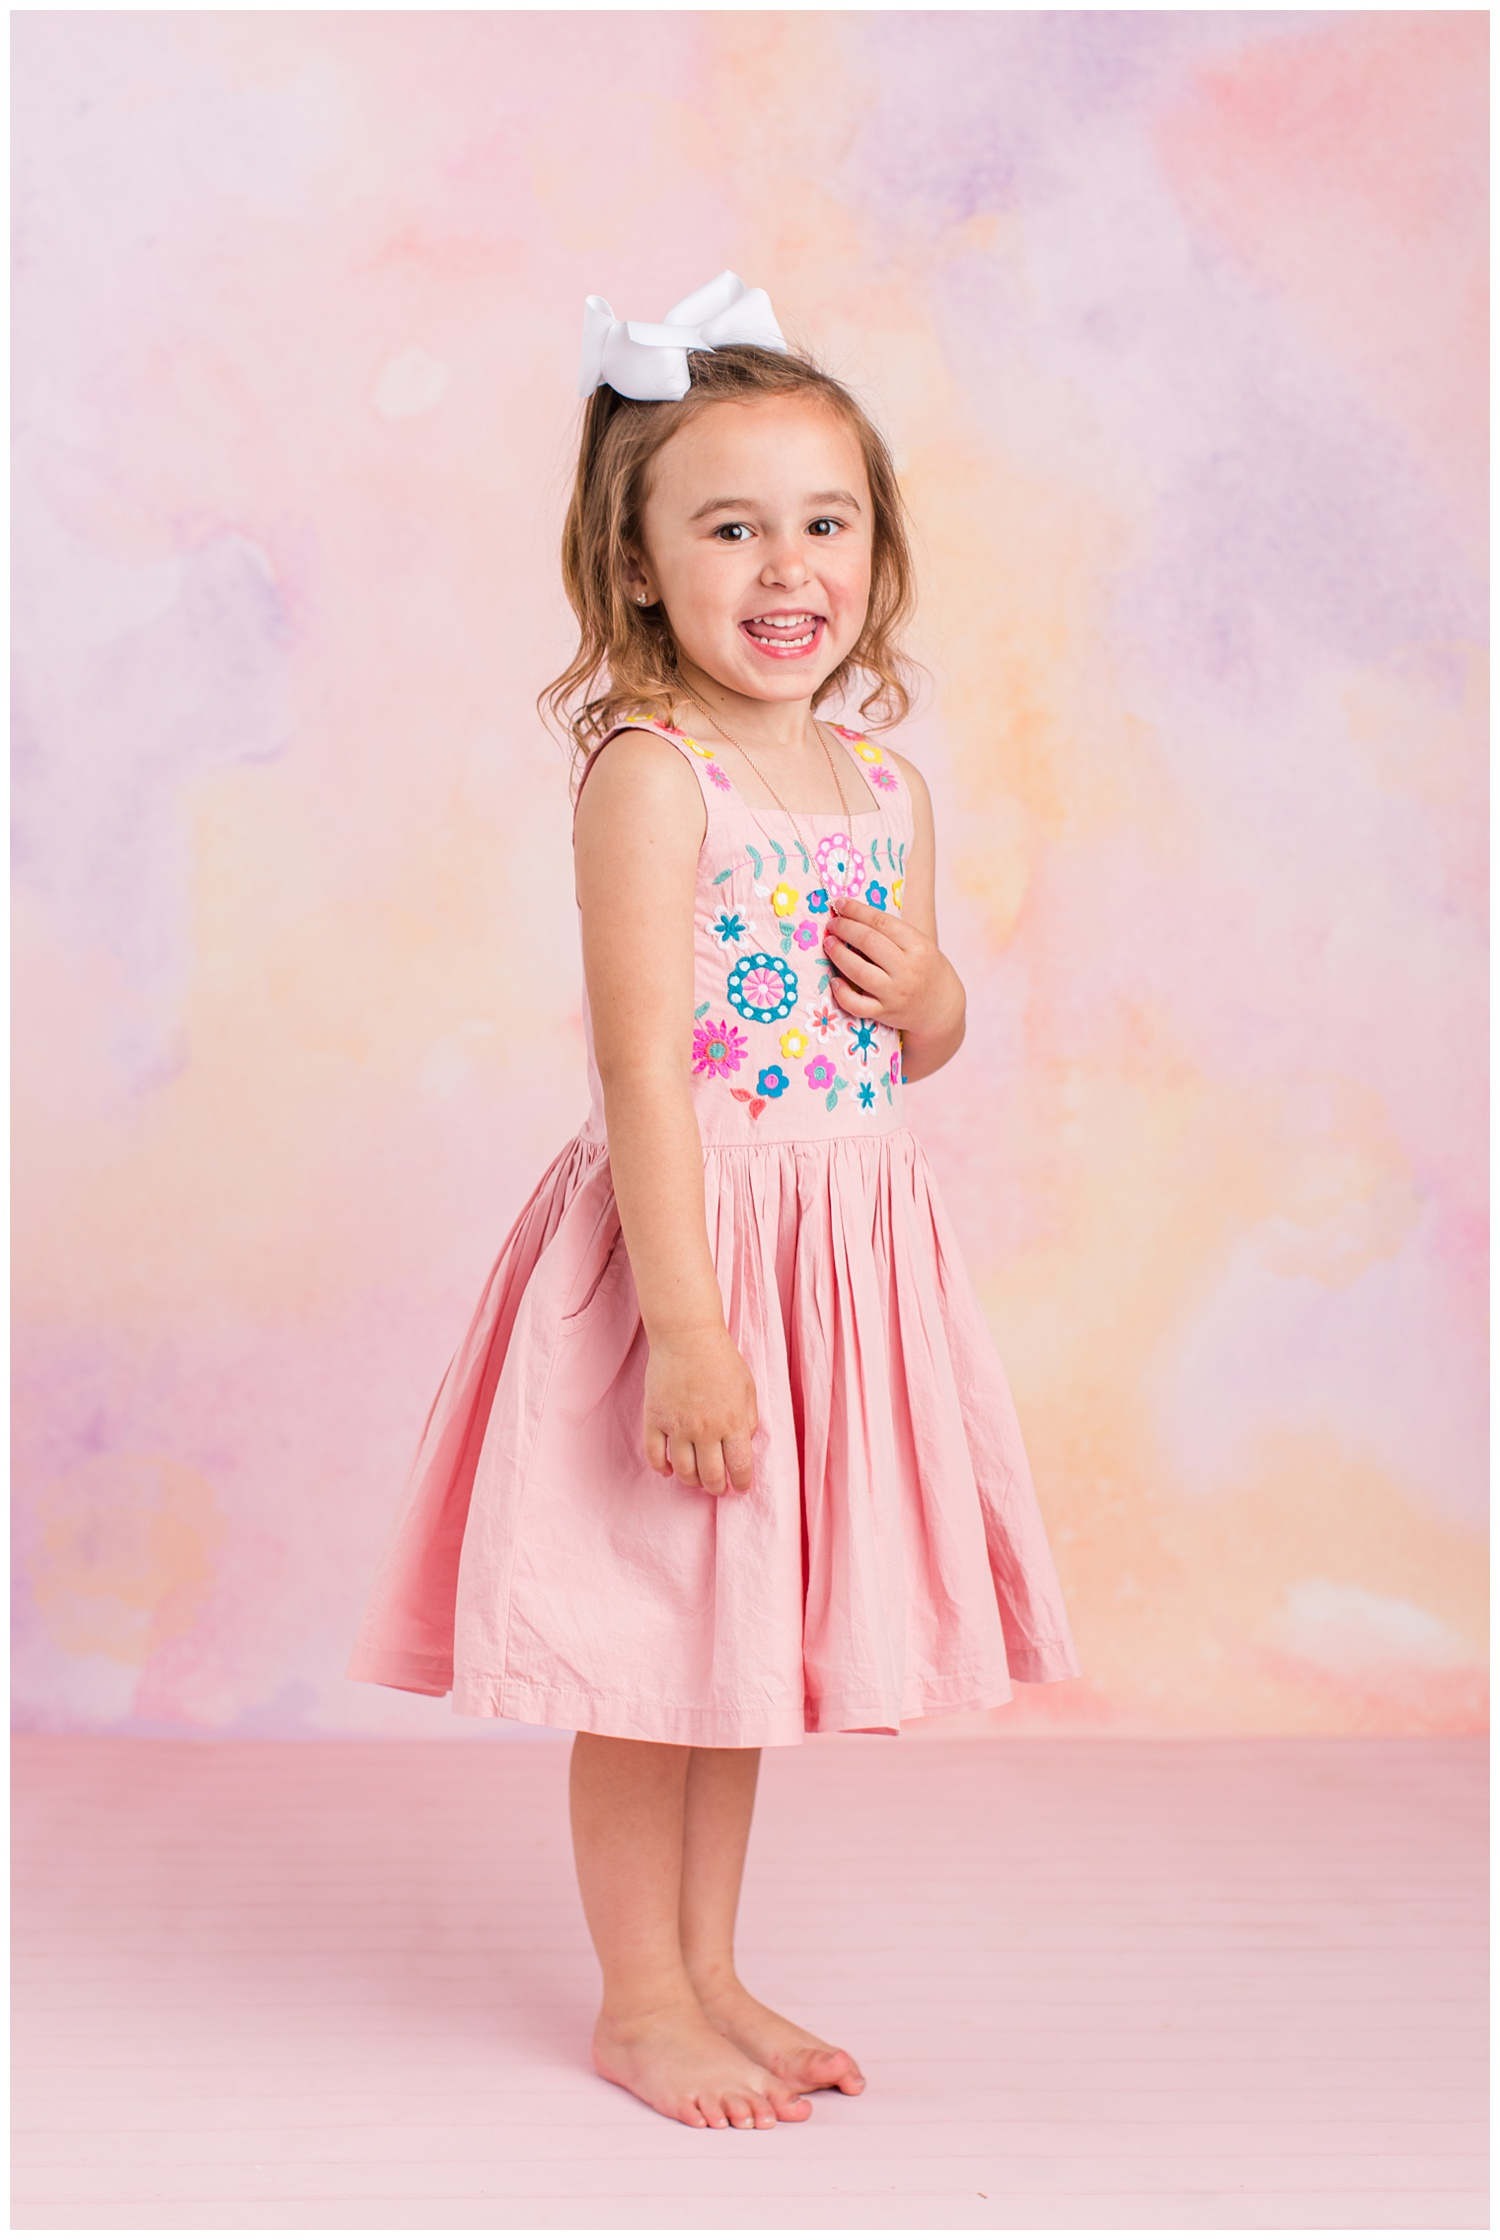 Four year old Sadie standing and smiling wearing a pink dress with floral embroidery on the bodice.